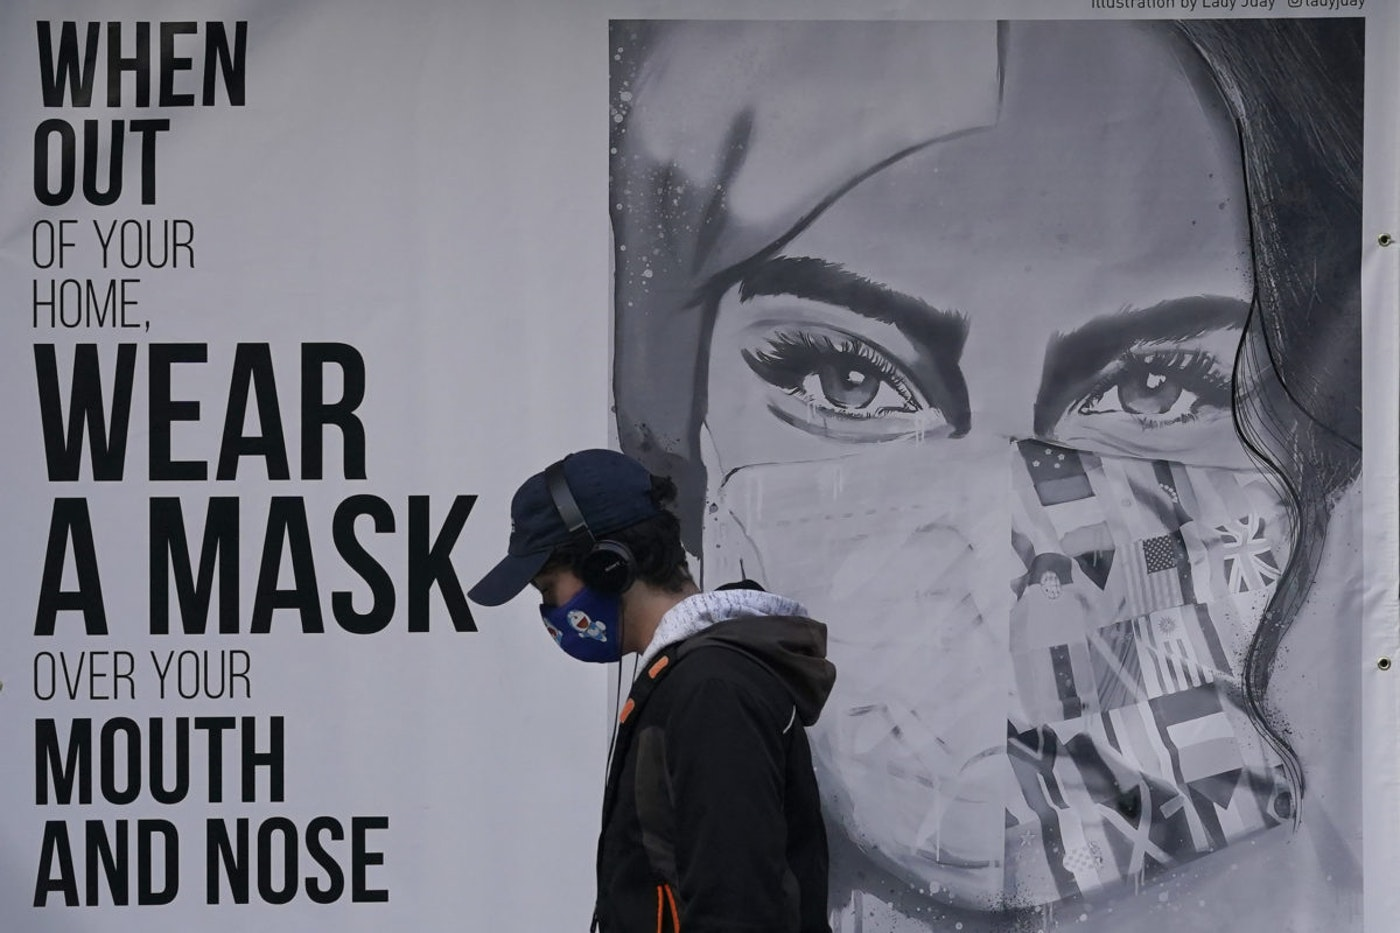 """A pedestrian walks past a mural reading: """"When out of your home, Wear a mask over your mouth and nose,"""" during the coronavirus outbreak in San Francisco. (AP Photo/Jeff Chiu, File)"""